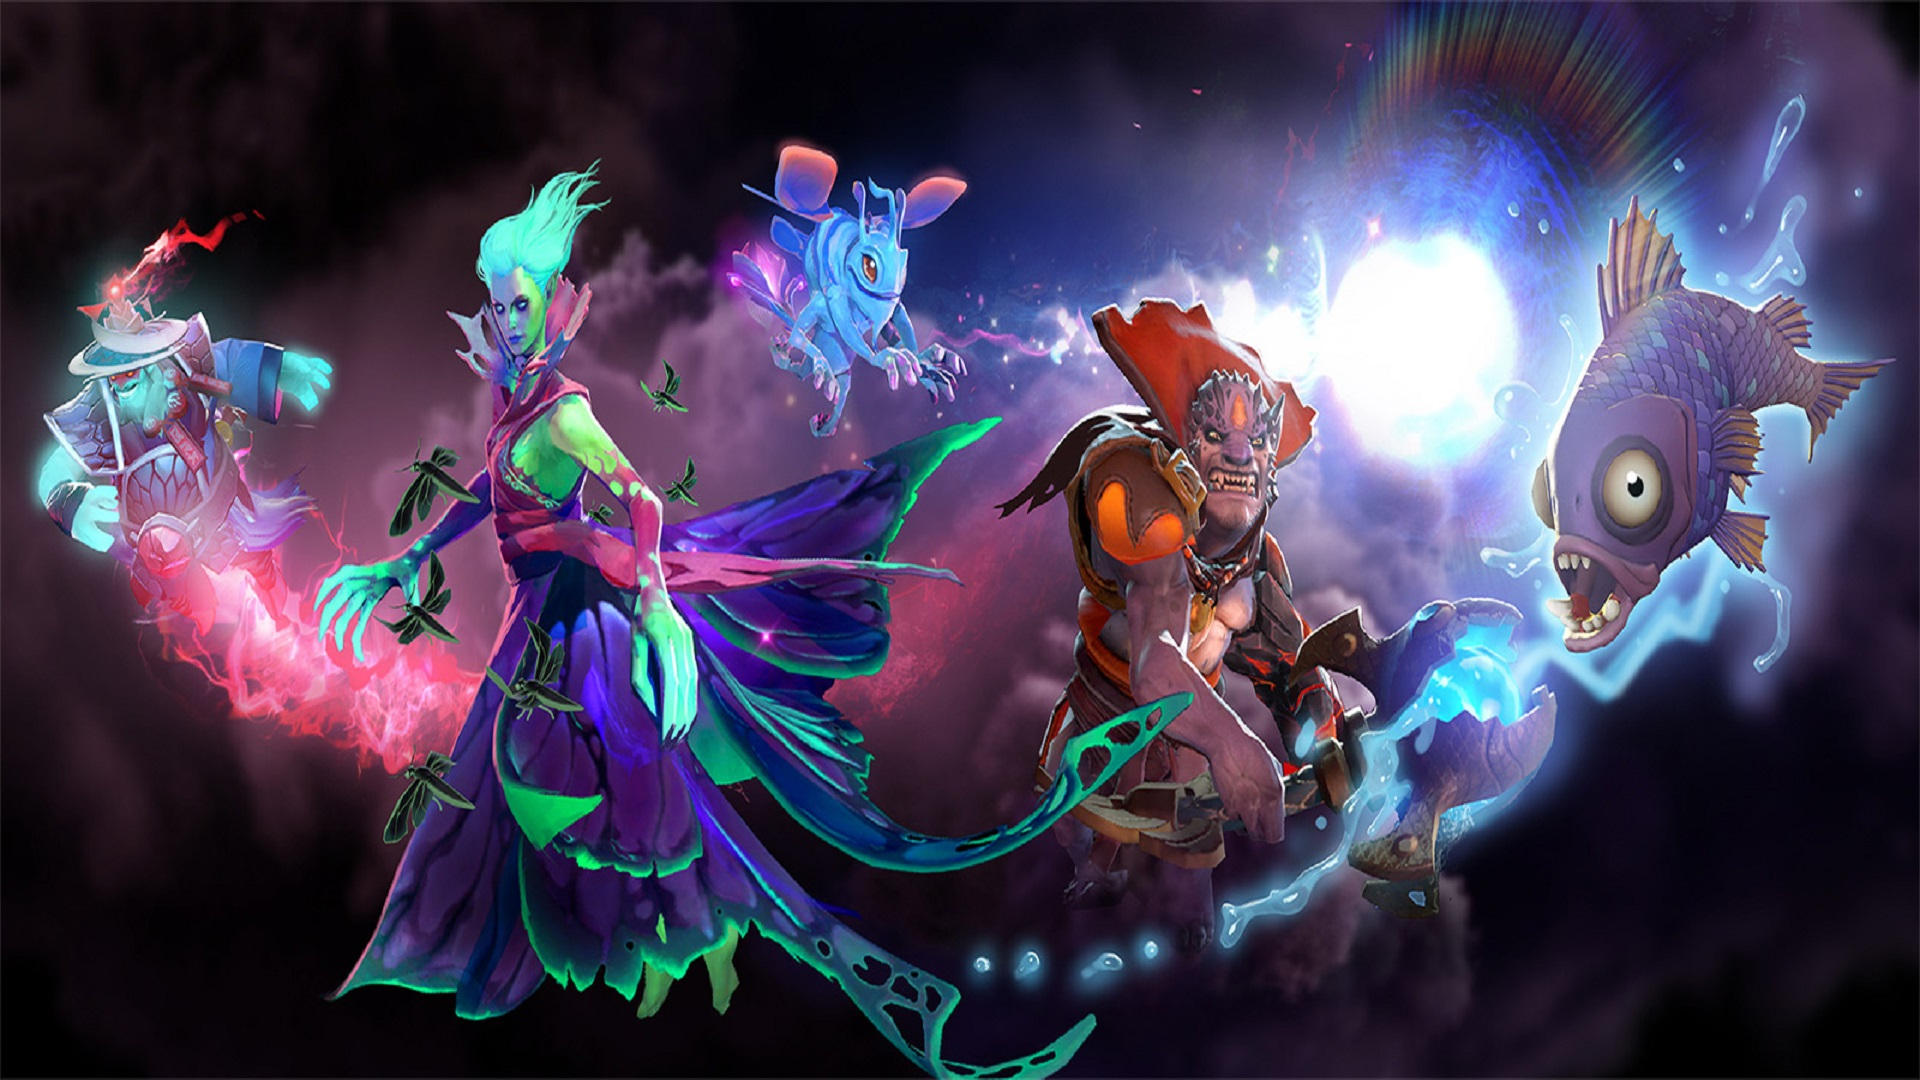 Dota 2 Immortal 14: Immortal Dota 2 Items Wallpapers The Play Dota 2